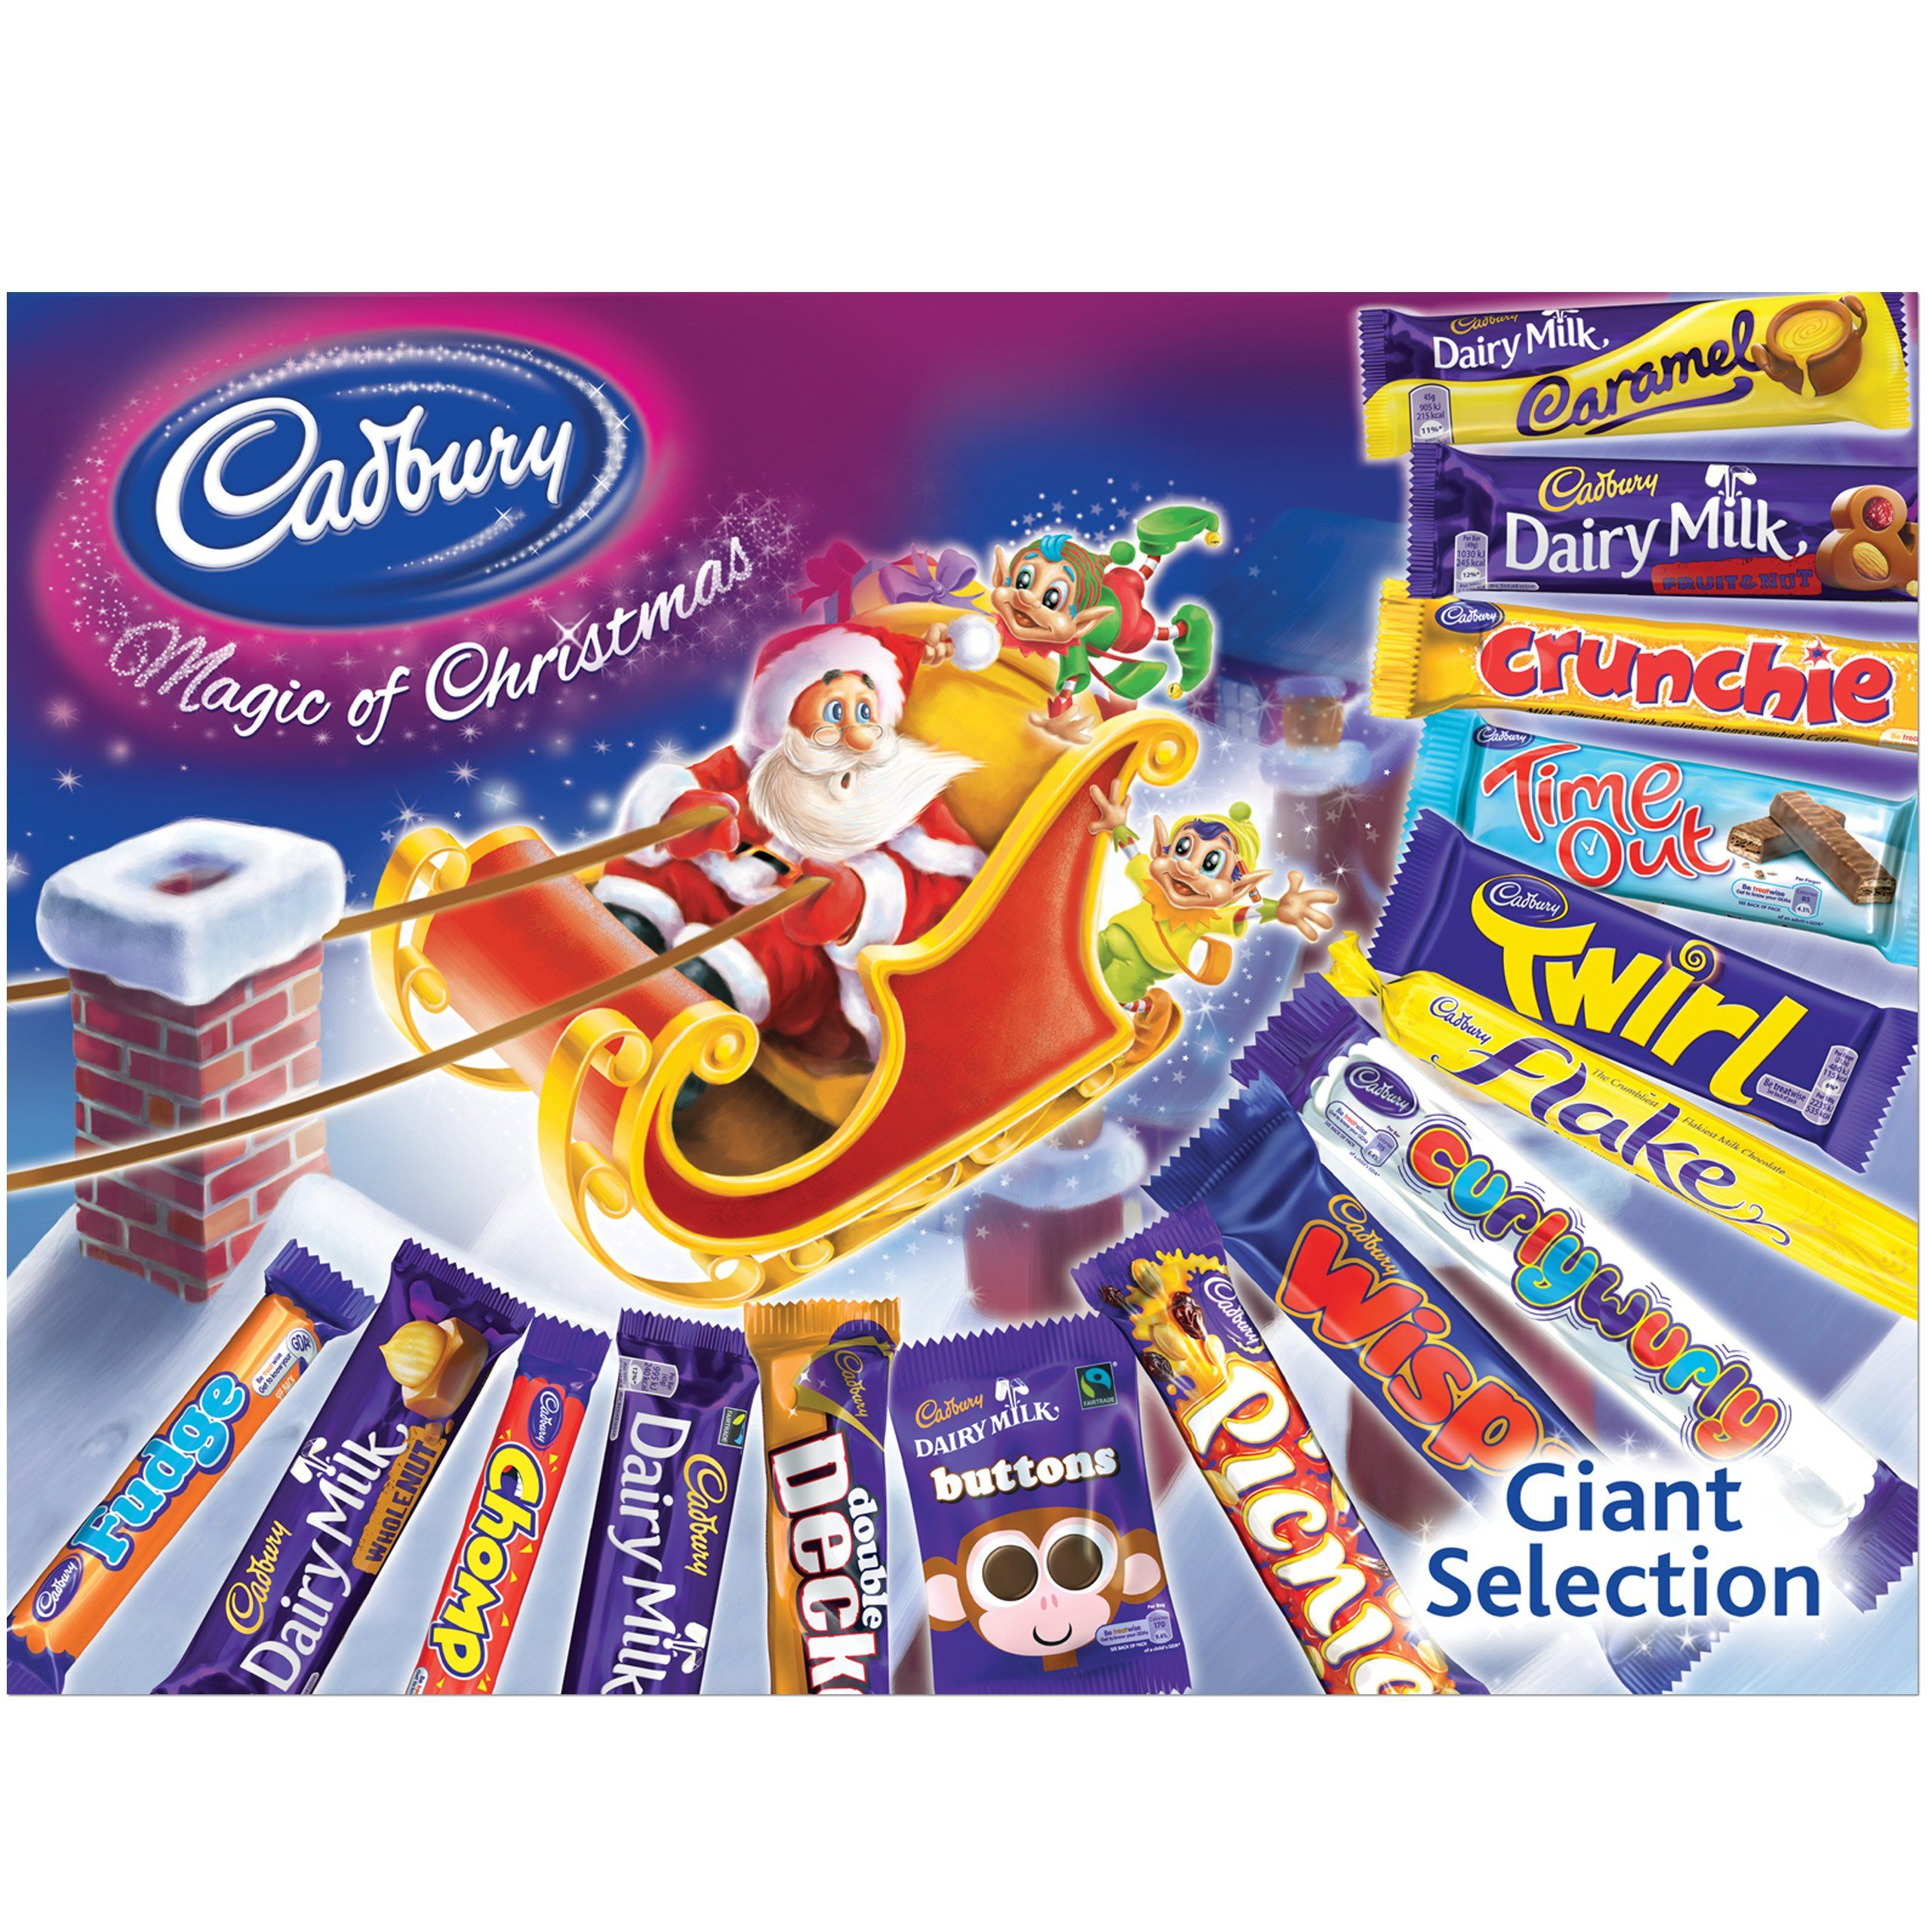 Cadbury Giant Christmas Selection Box Amazon.co.uk